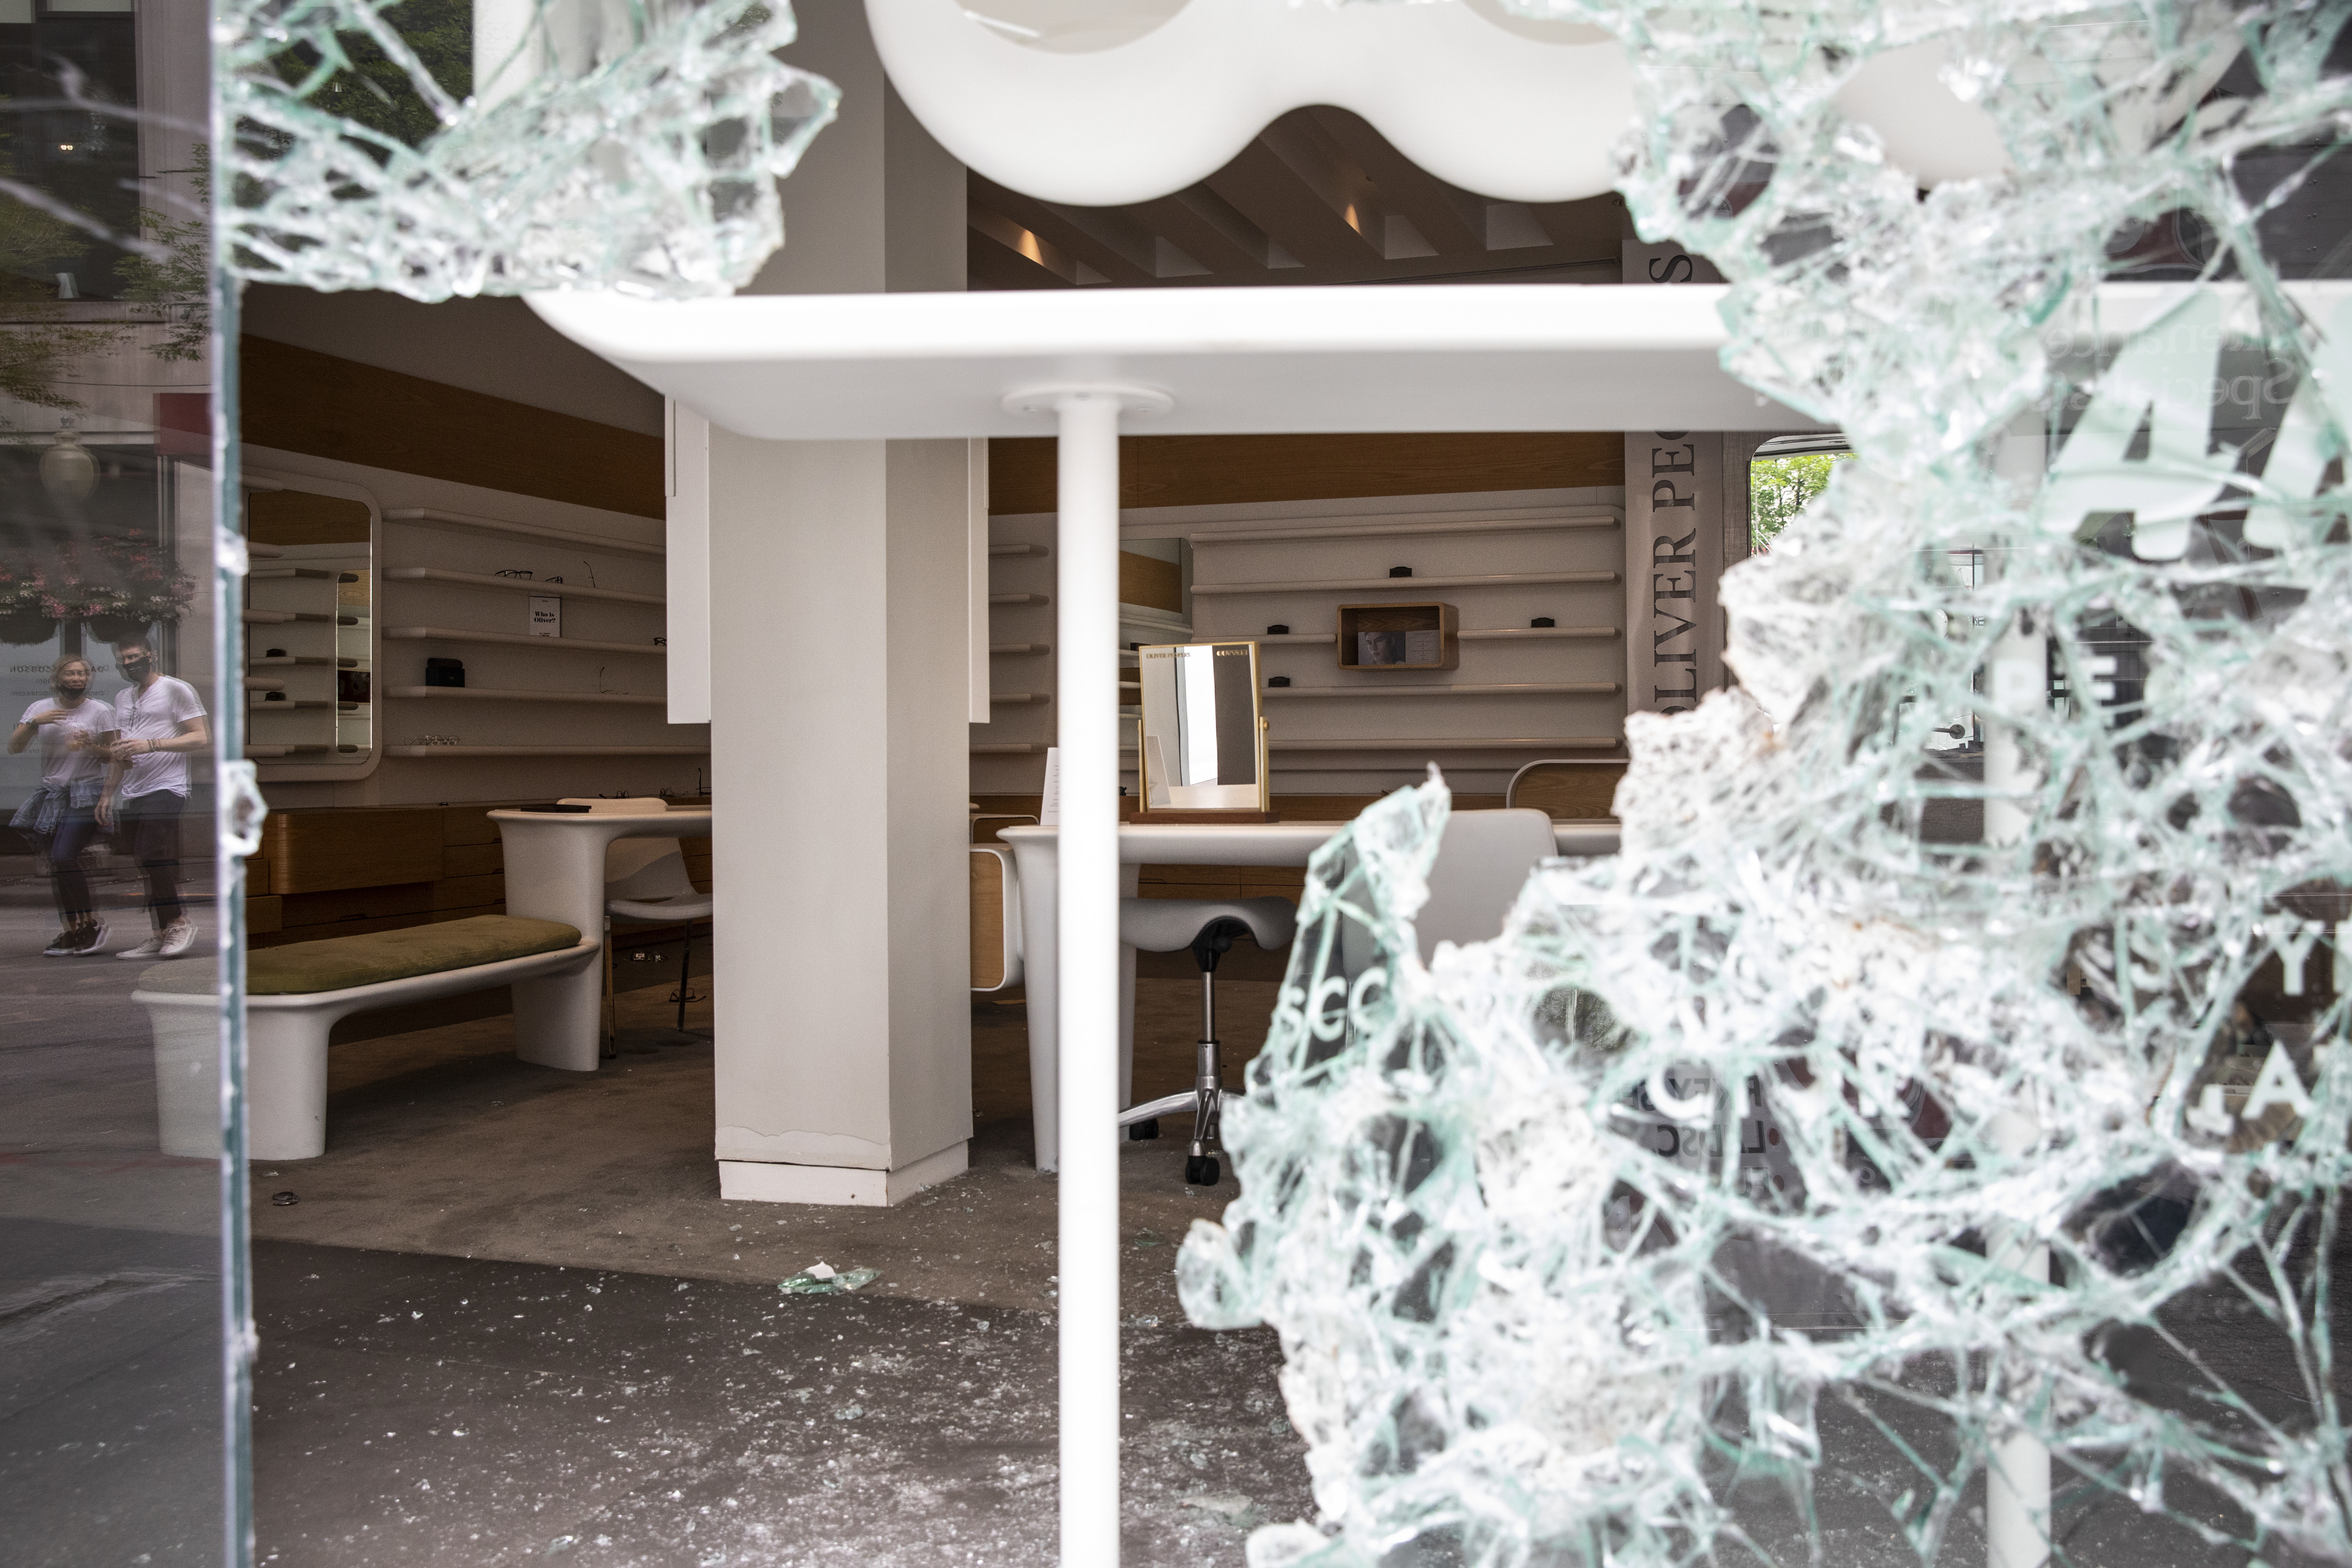 Oliver Peoples at 941 N. Rush St. after looting broke out overnight on Aug. 10, 2020 in the Gold Coast and surrounding neighborhoods.